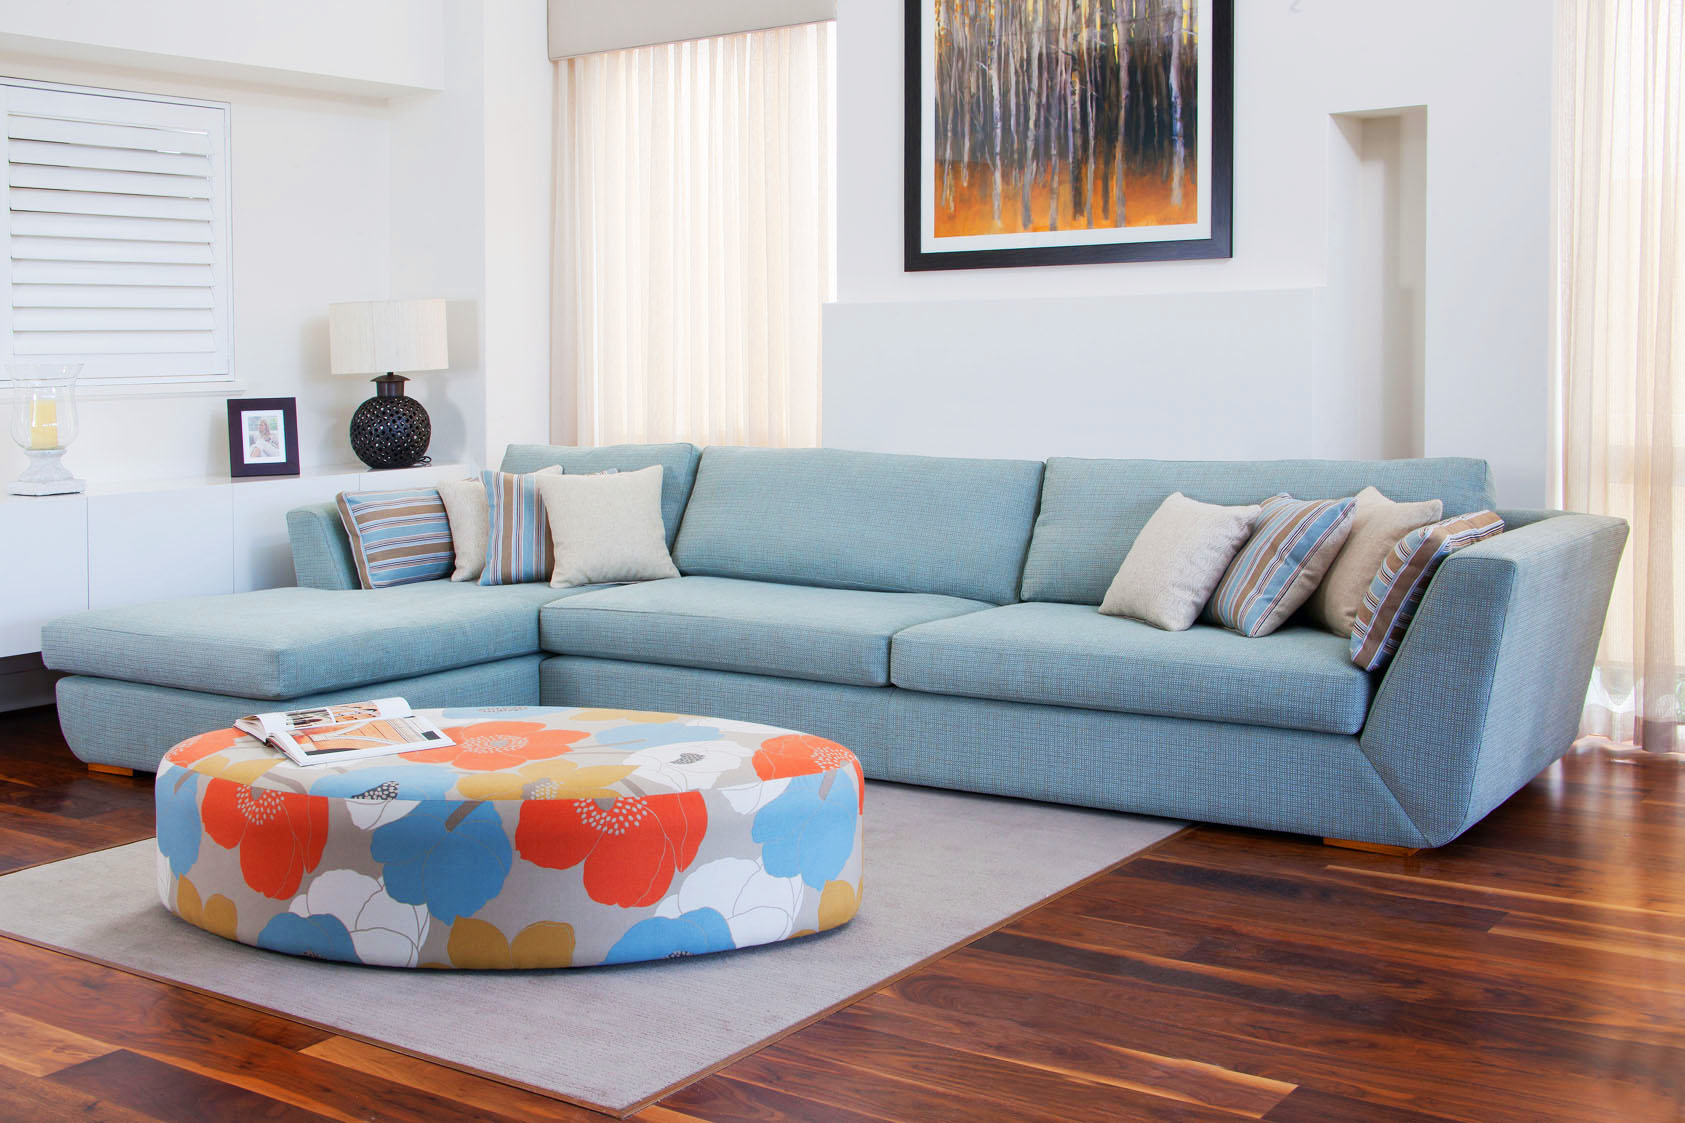 curved modular sofa australia how to clean a from dog smell perth opus design and manufacture